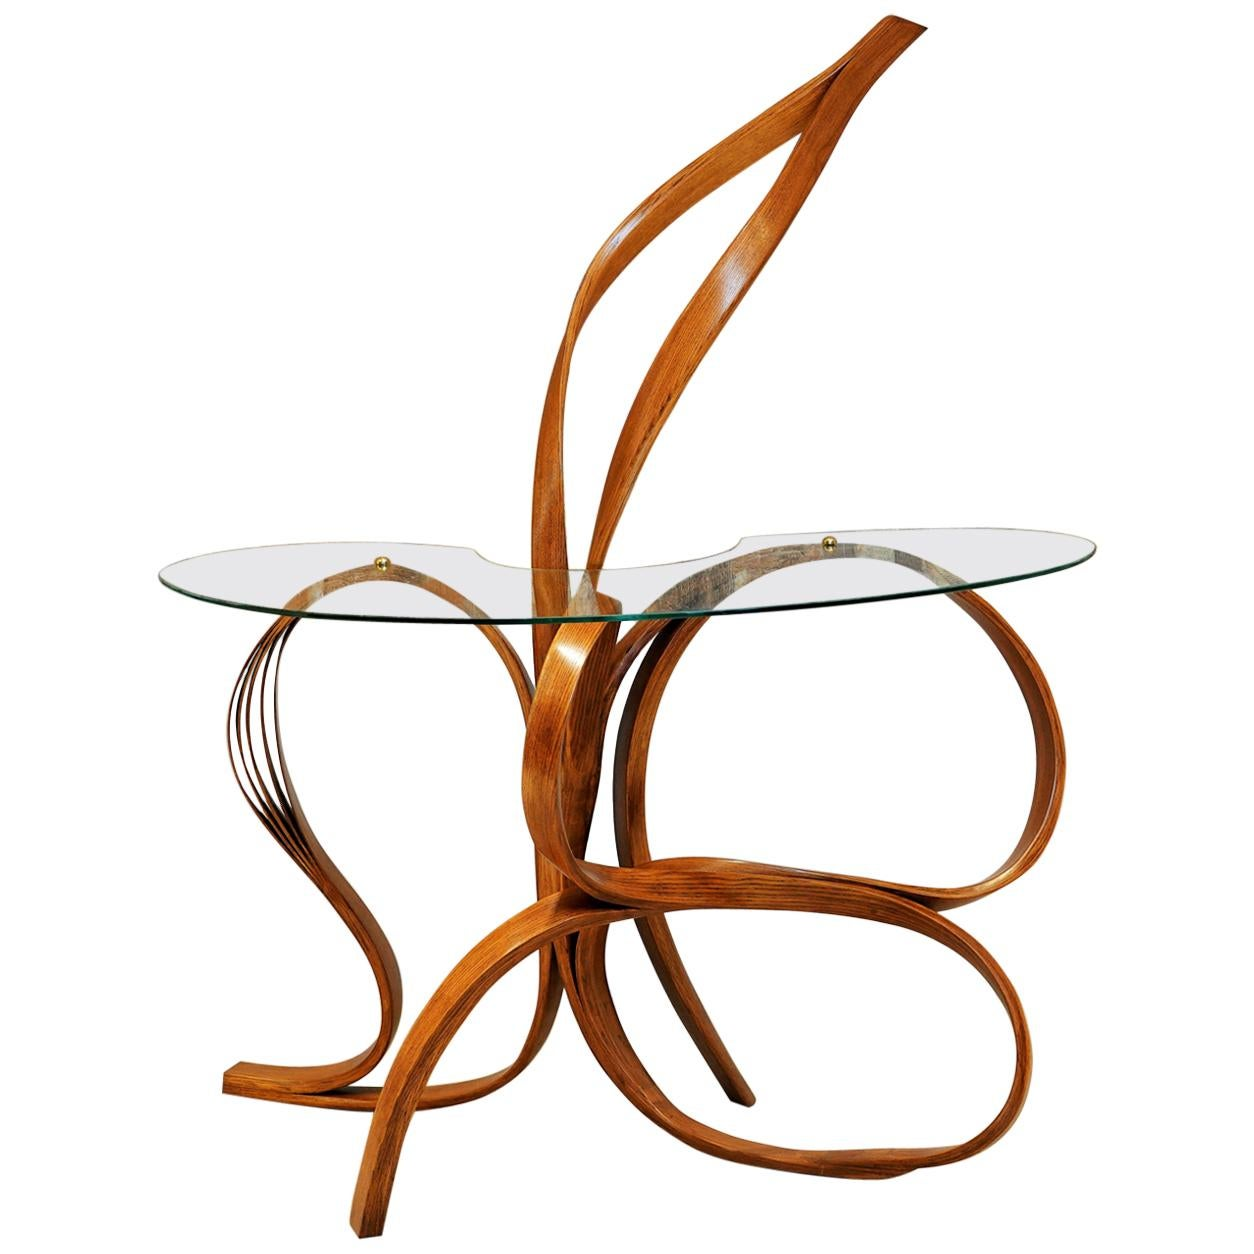 Foyer Table by Raka Studio - Bent Wood with Brass Elements and Safety Glass